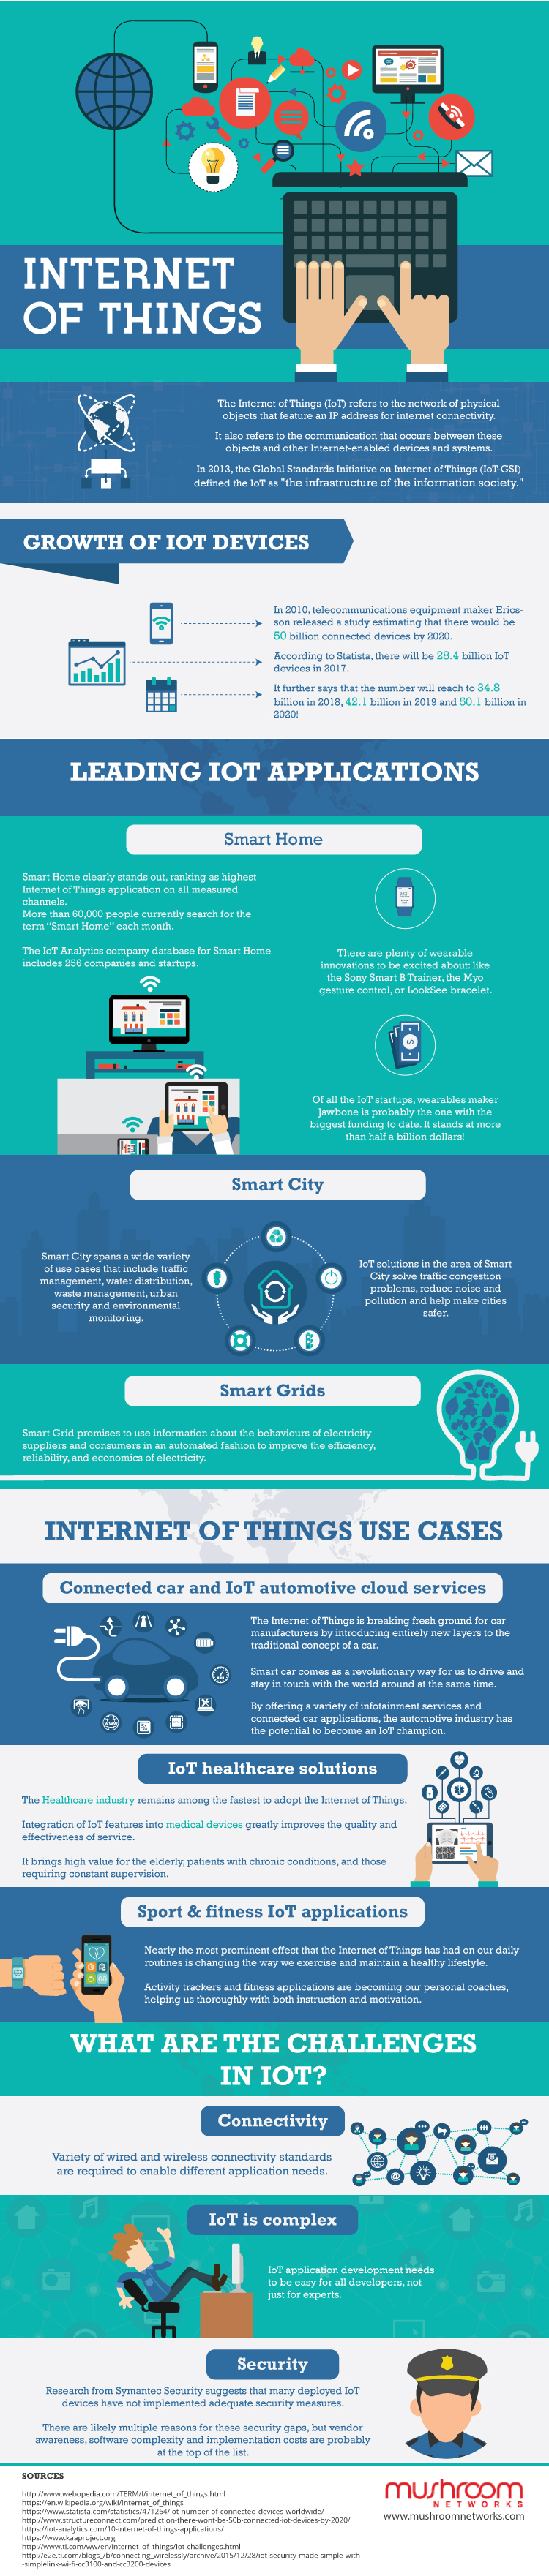 The Internet of Things 2017 & its challenges | IoT ...